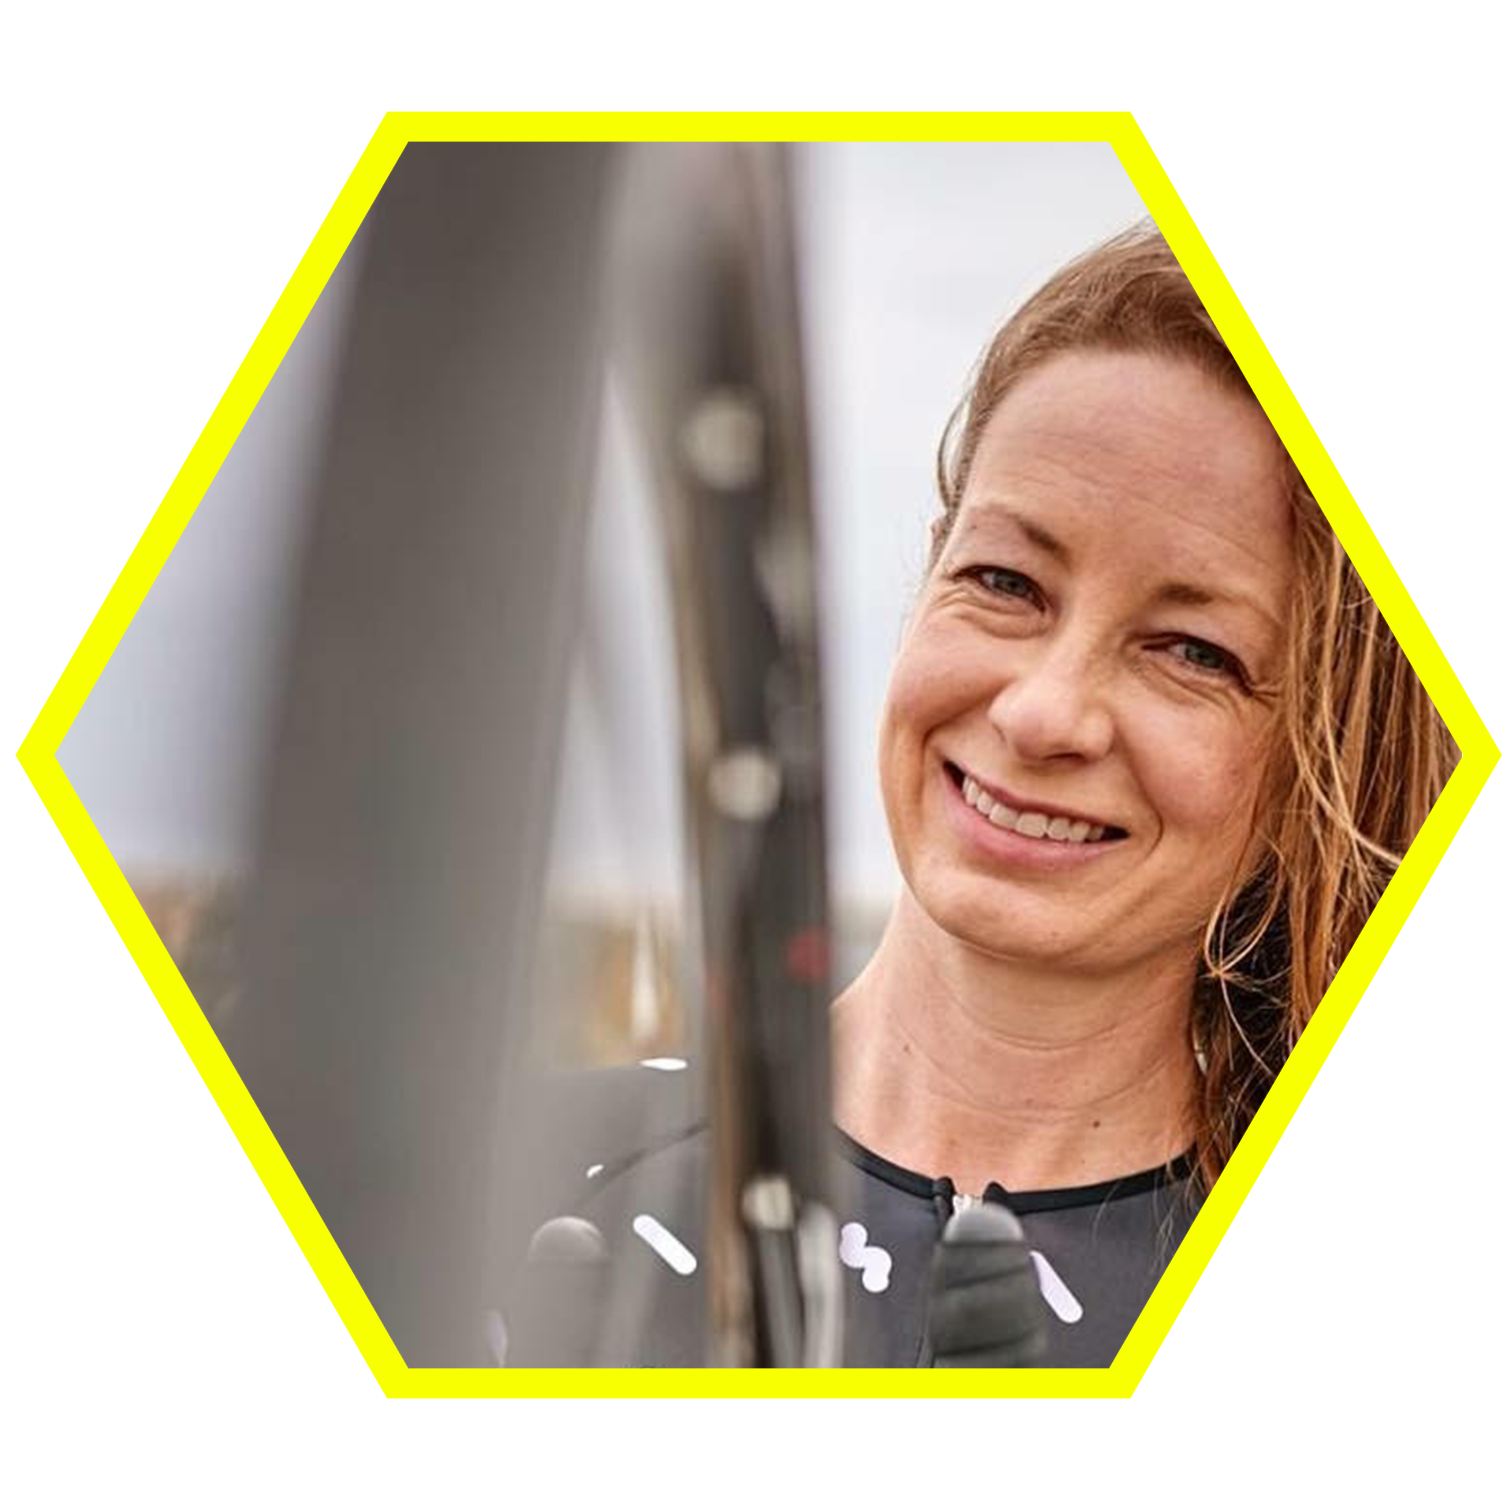 KARIS SHEARER - Karis Shearer is the assistant director of the X Elle Women's Cycling Association in Kelowna, British Columbia. In addition to being an avid amateur cyclist, triathlete, and commuter, she also writes about and advocates for equity and inclusion in sport.